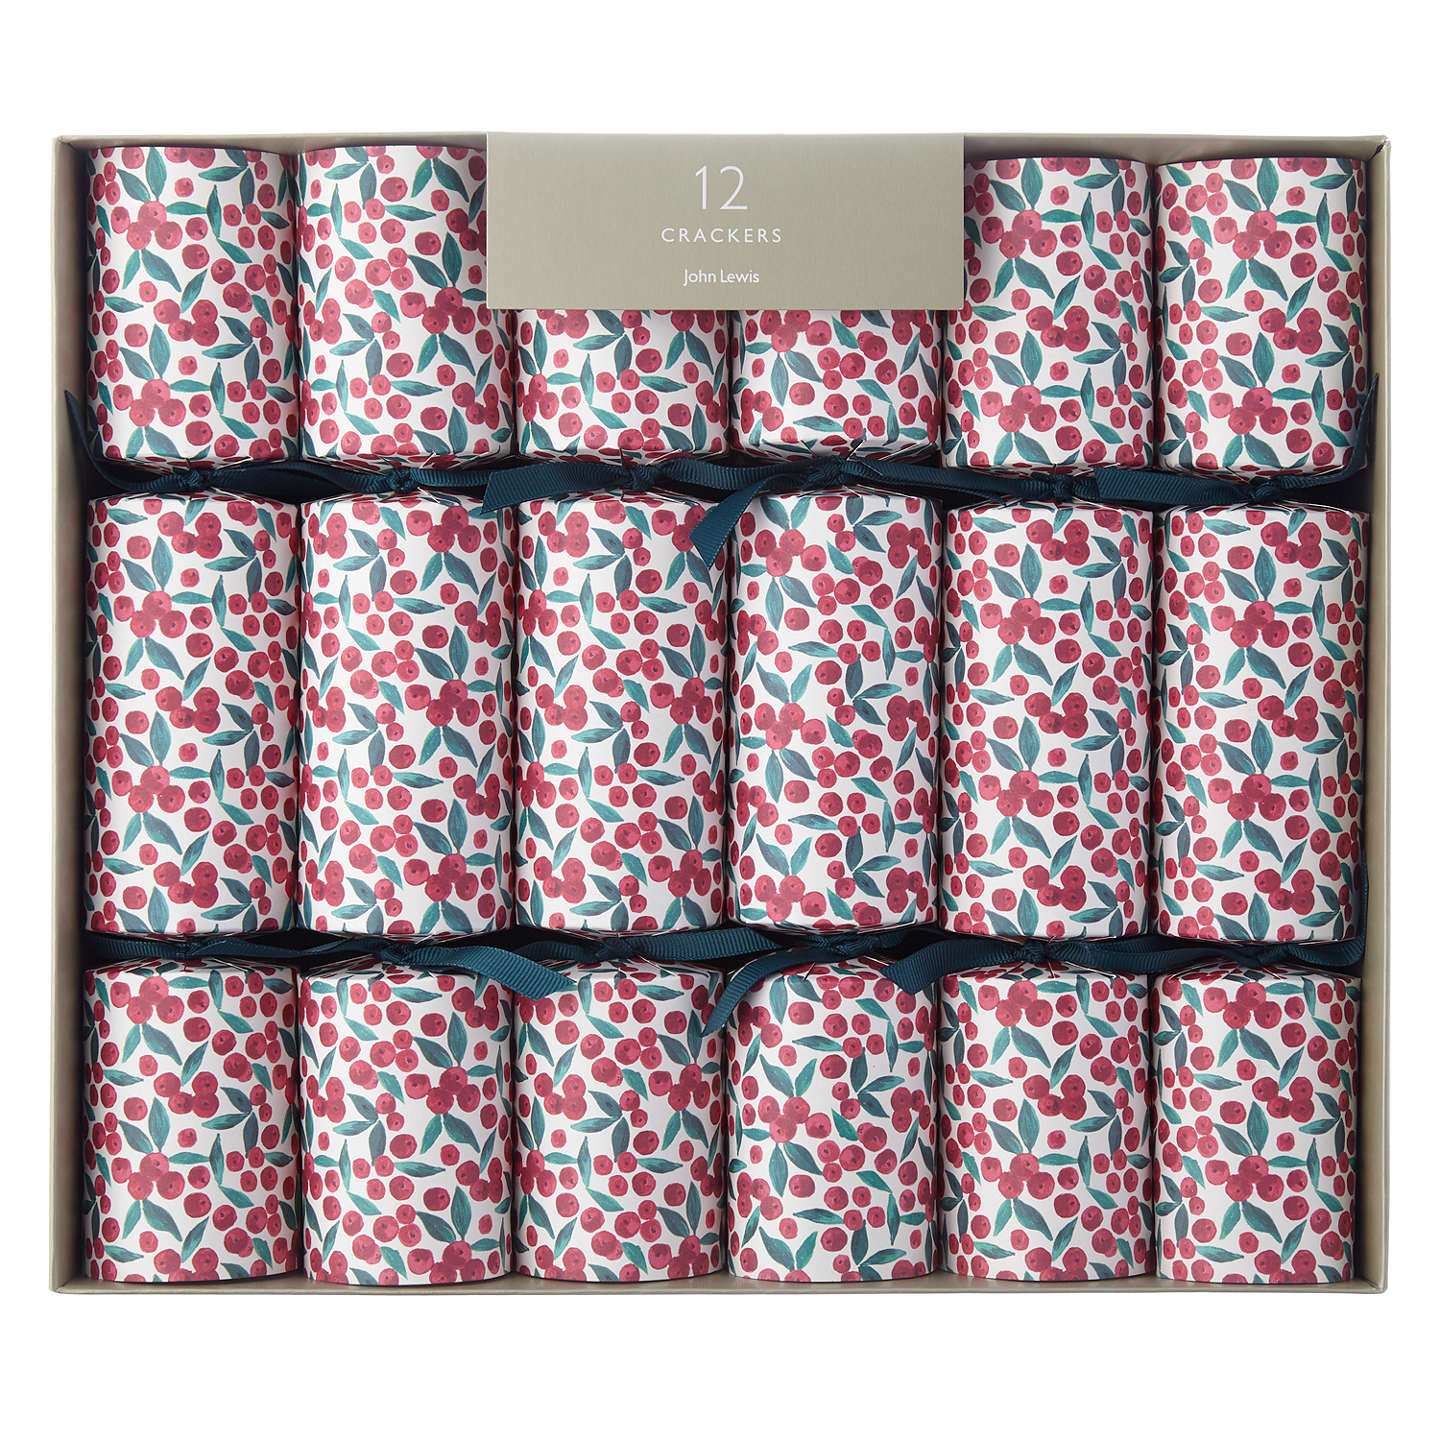 John lewis ditsy berry christmas crackers pack of 12 white at john buyjohn lewis ditsy berry christmas crackers pack of 12 white online at johnlewis solutioingenieria